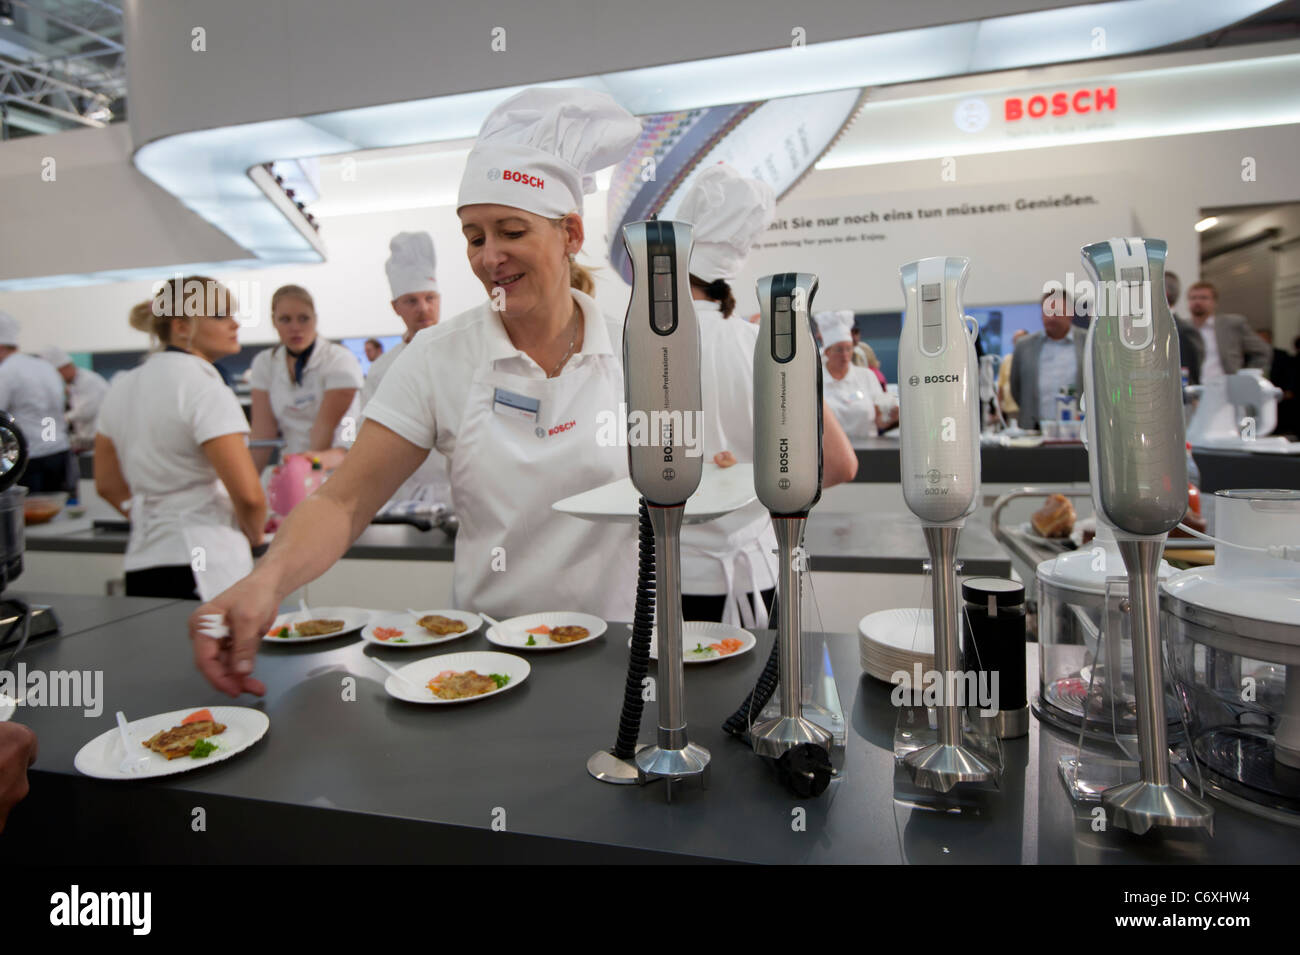 Bosch display stand at IFA consumer electronics trade fair in Berlin Germany 2011 - Stock Image